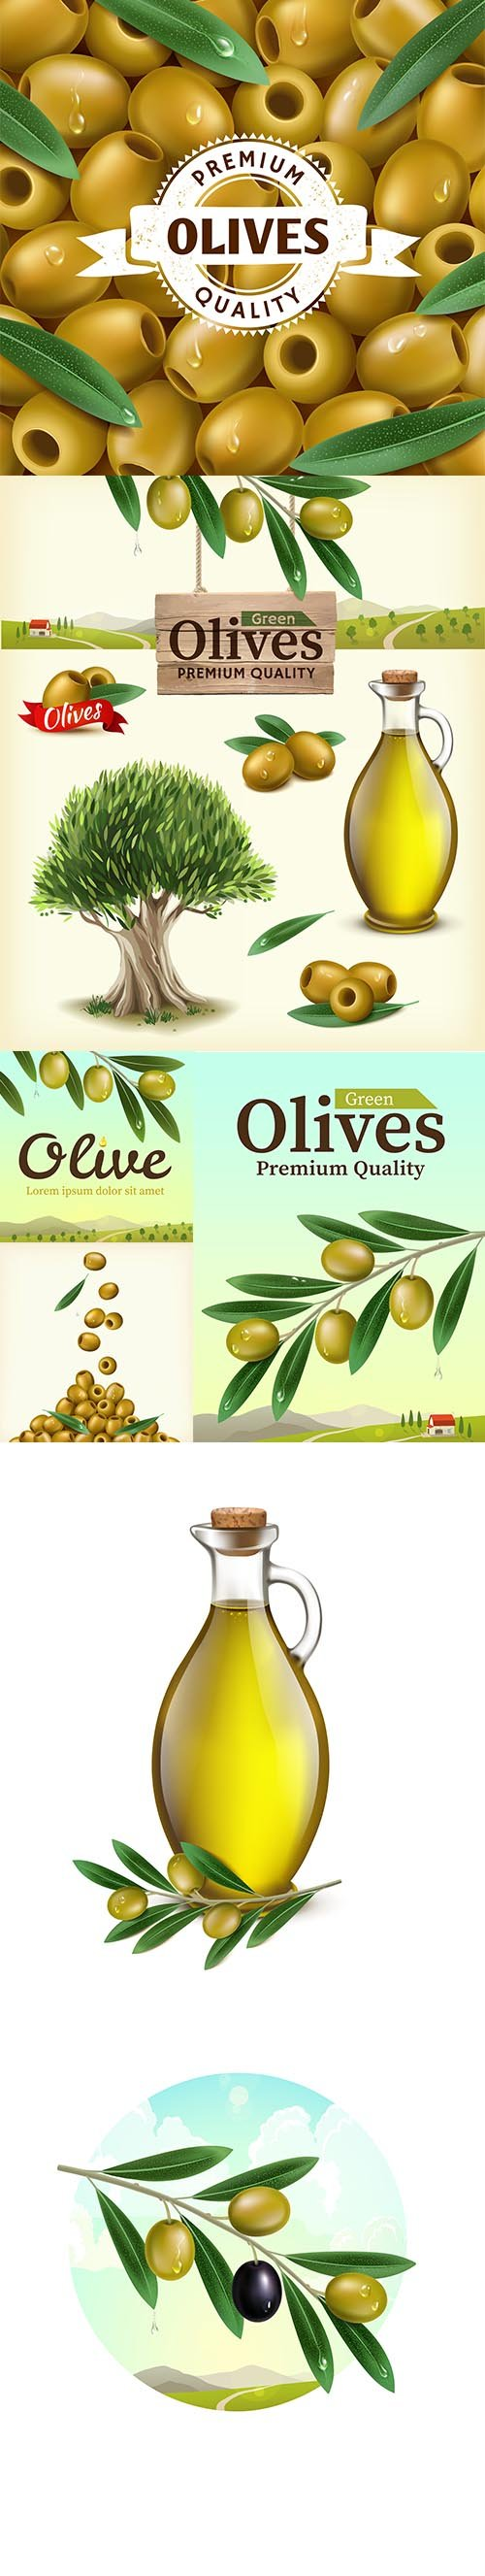 Realistic illustration of fruit olive plantations